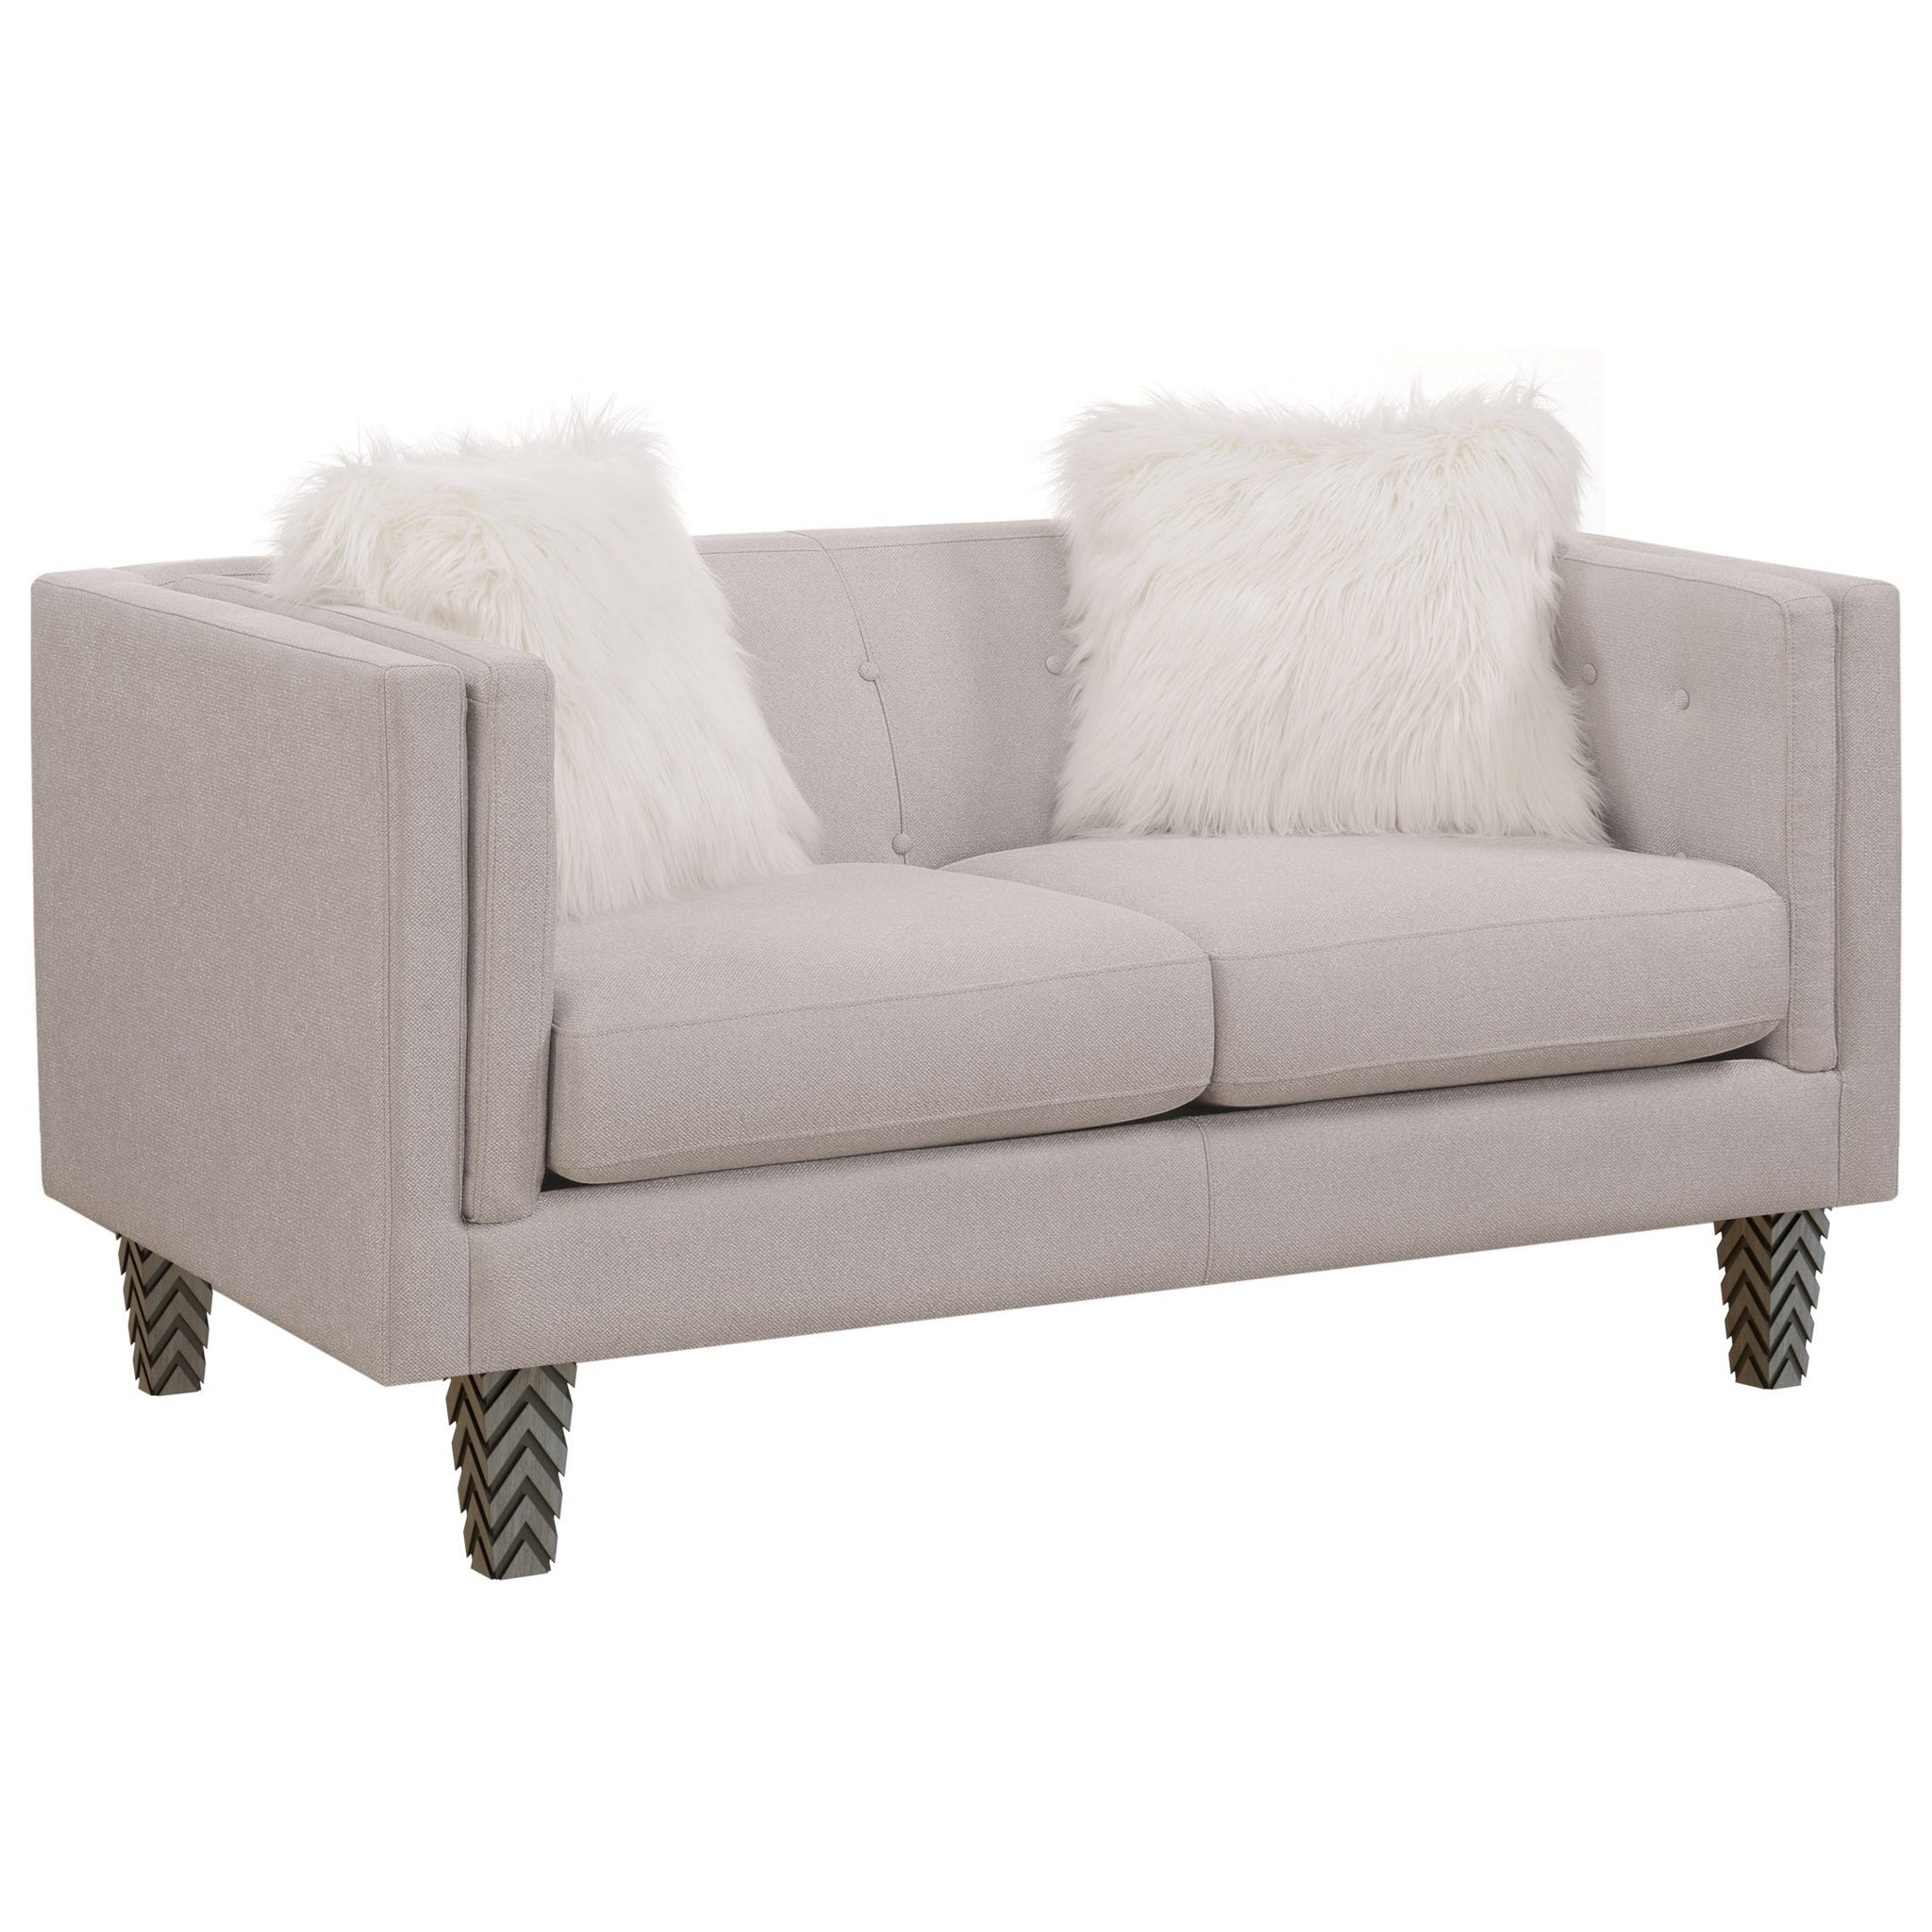 "Heida Light Gray Tufted Loveseat with Faux Fur Pillows (63"")"